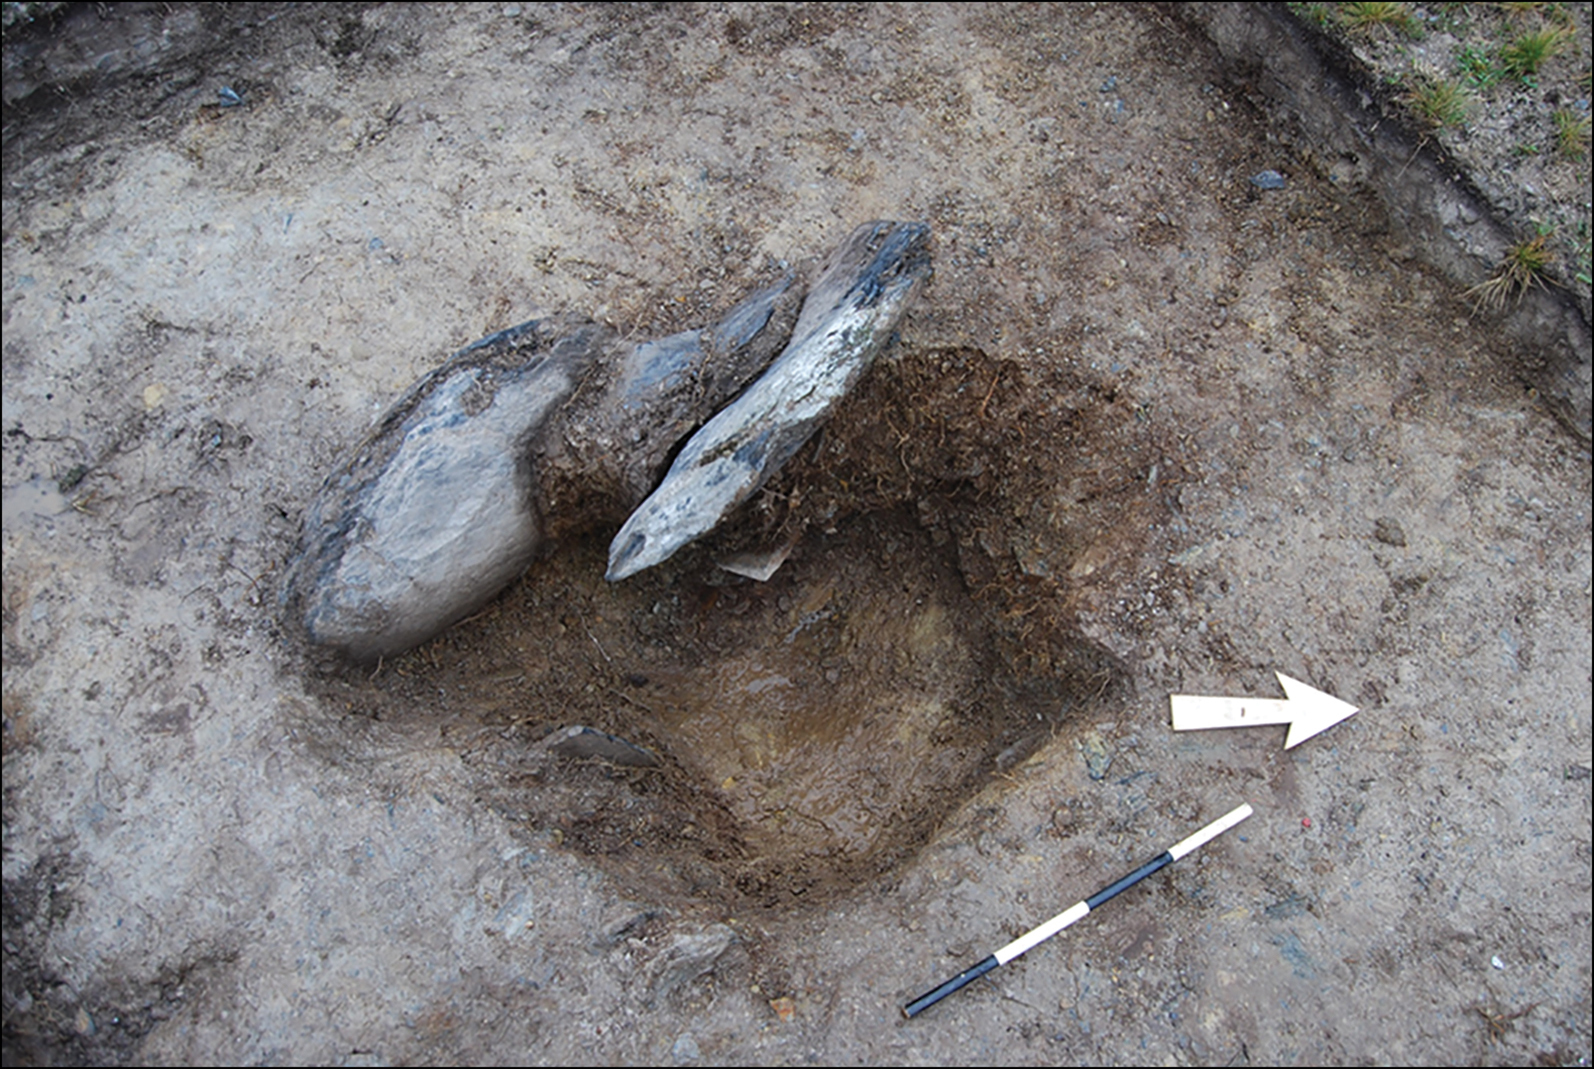 The holes are in the Preseli Hills, where the smaller 'bluestones' found at Stonehenge on Salisbury Plain are known to have come from